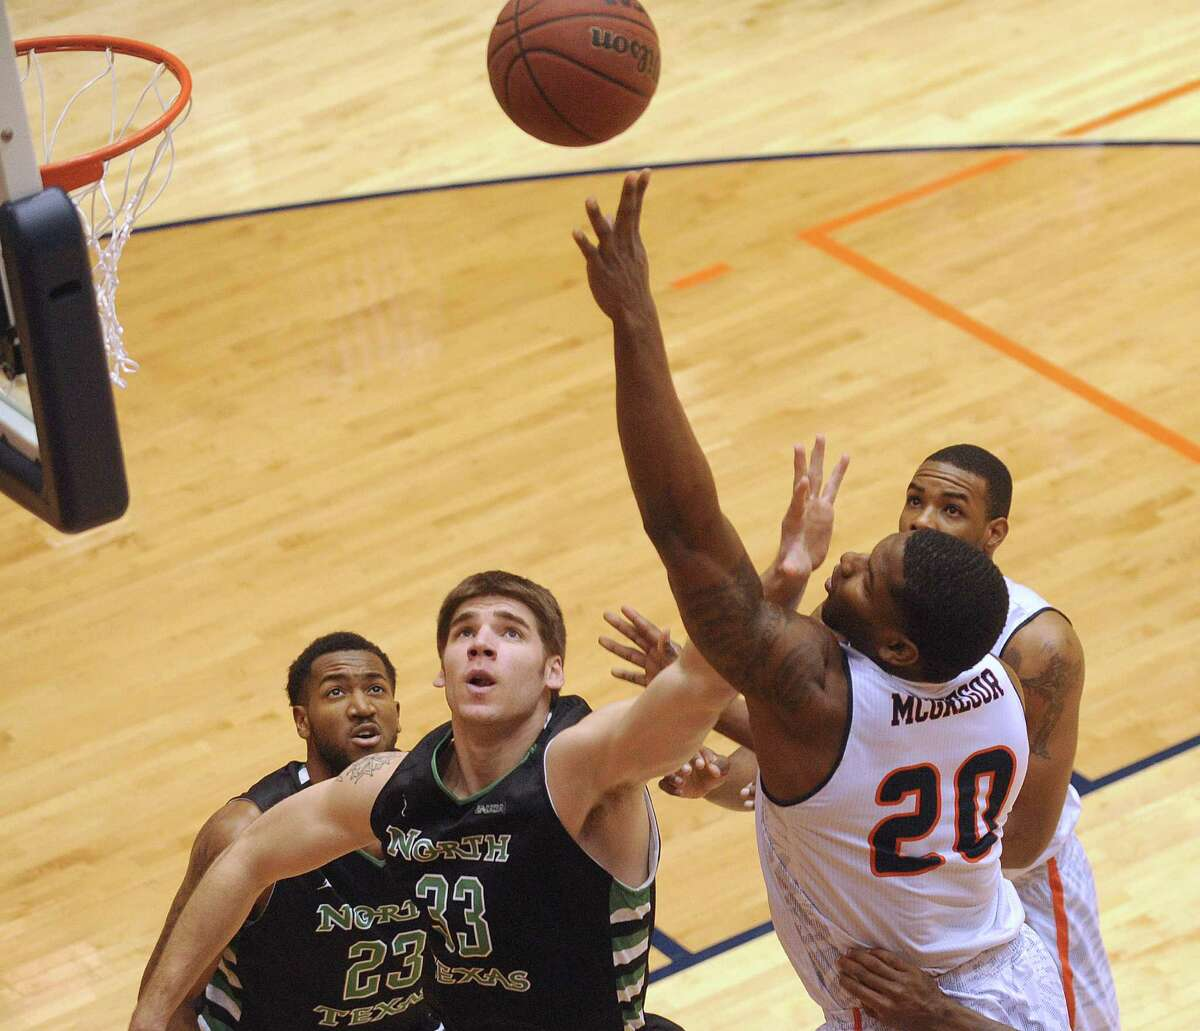 UTSA's Edrico McGregor shoots as Colin Voss of North Texas defends during college basketball action at the UTSA Convocation Center on Thursday, Feb. 27, 2014.